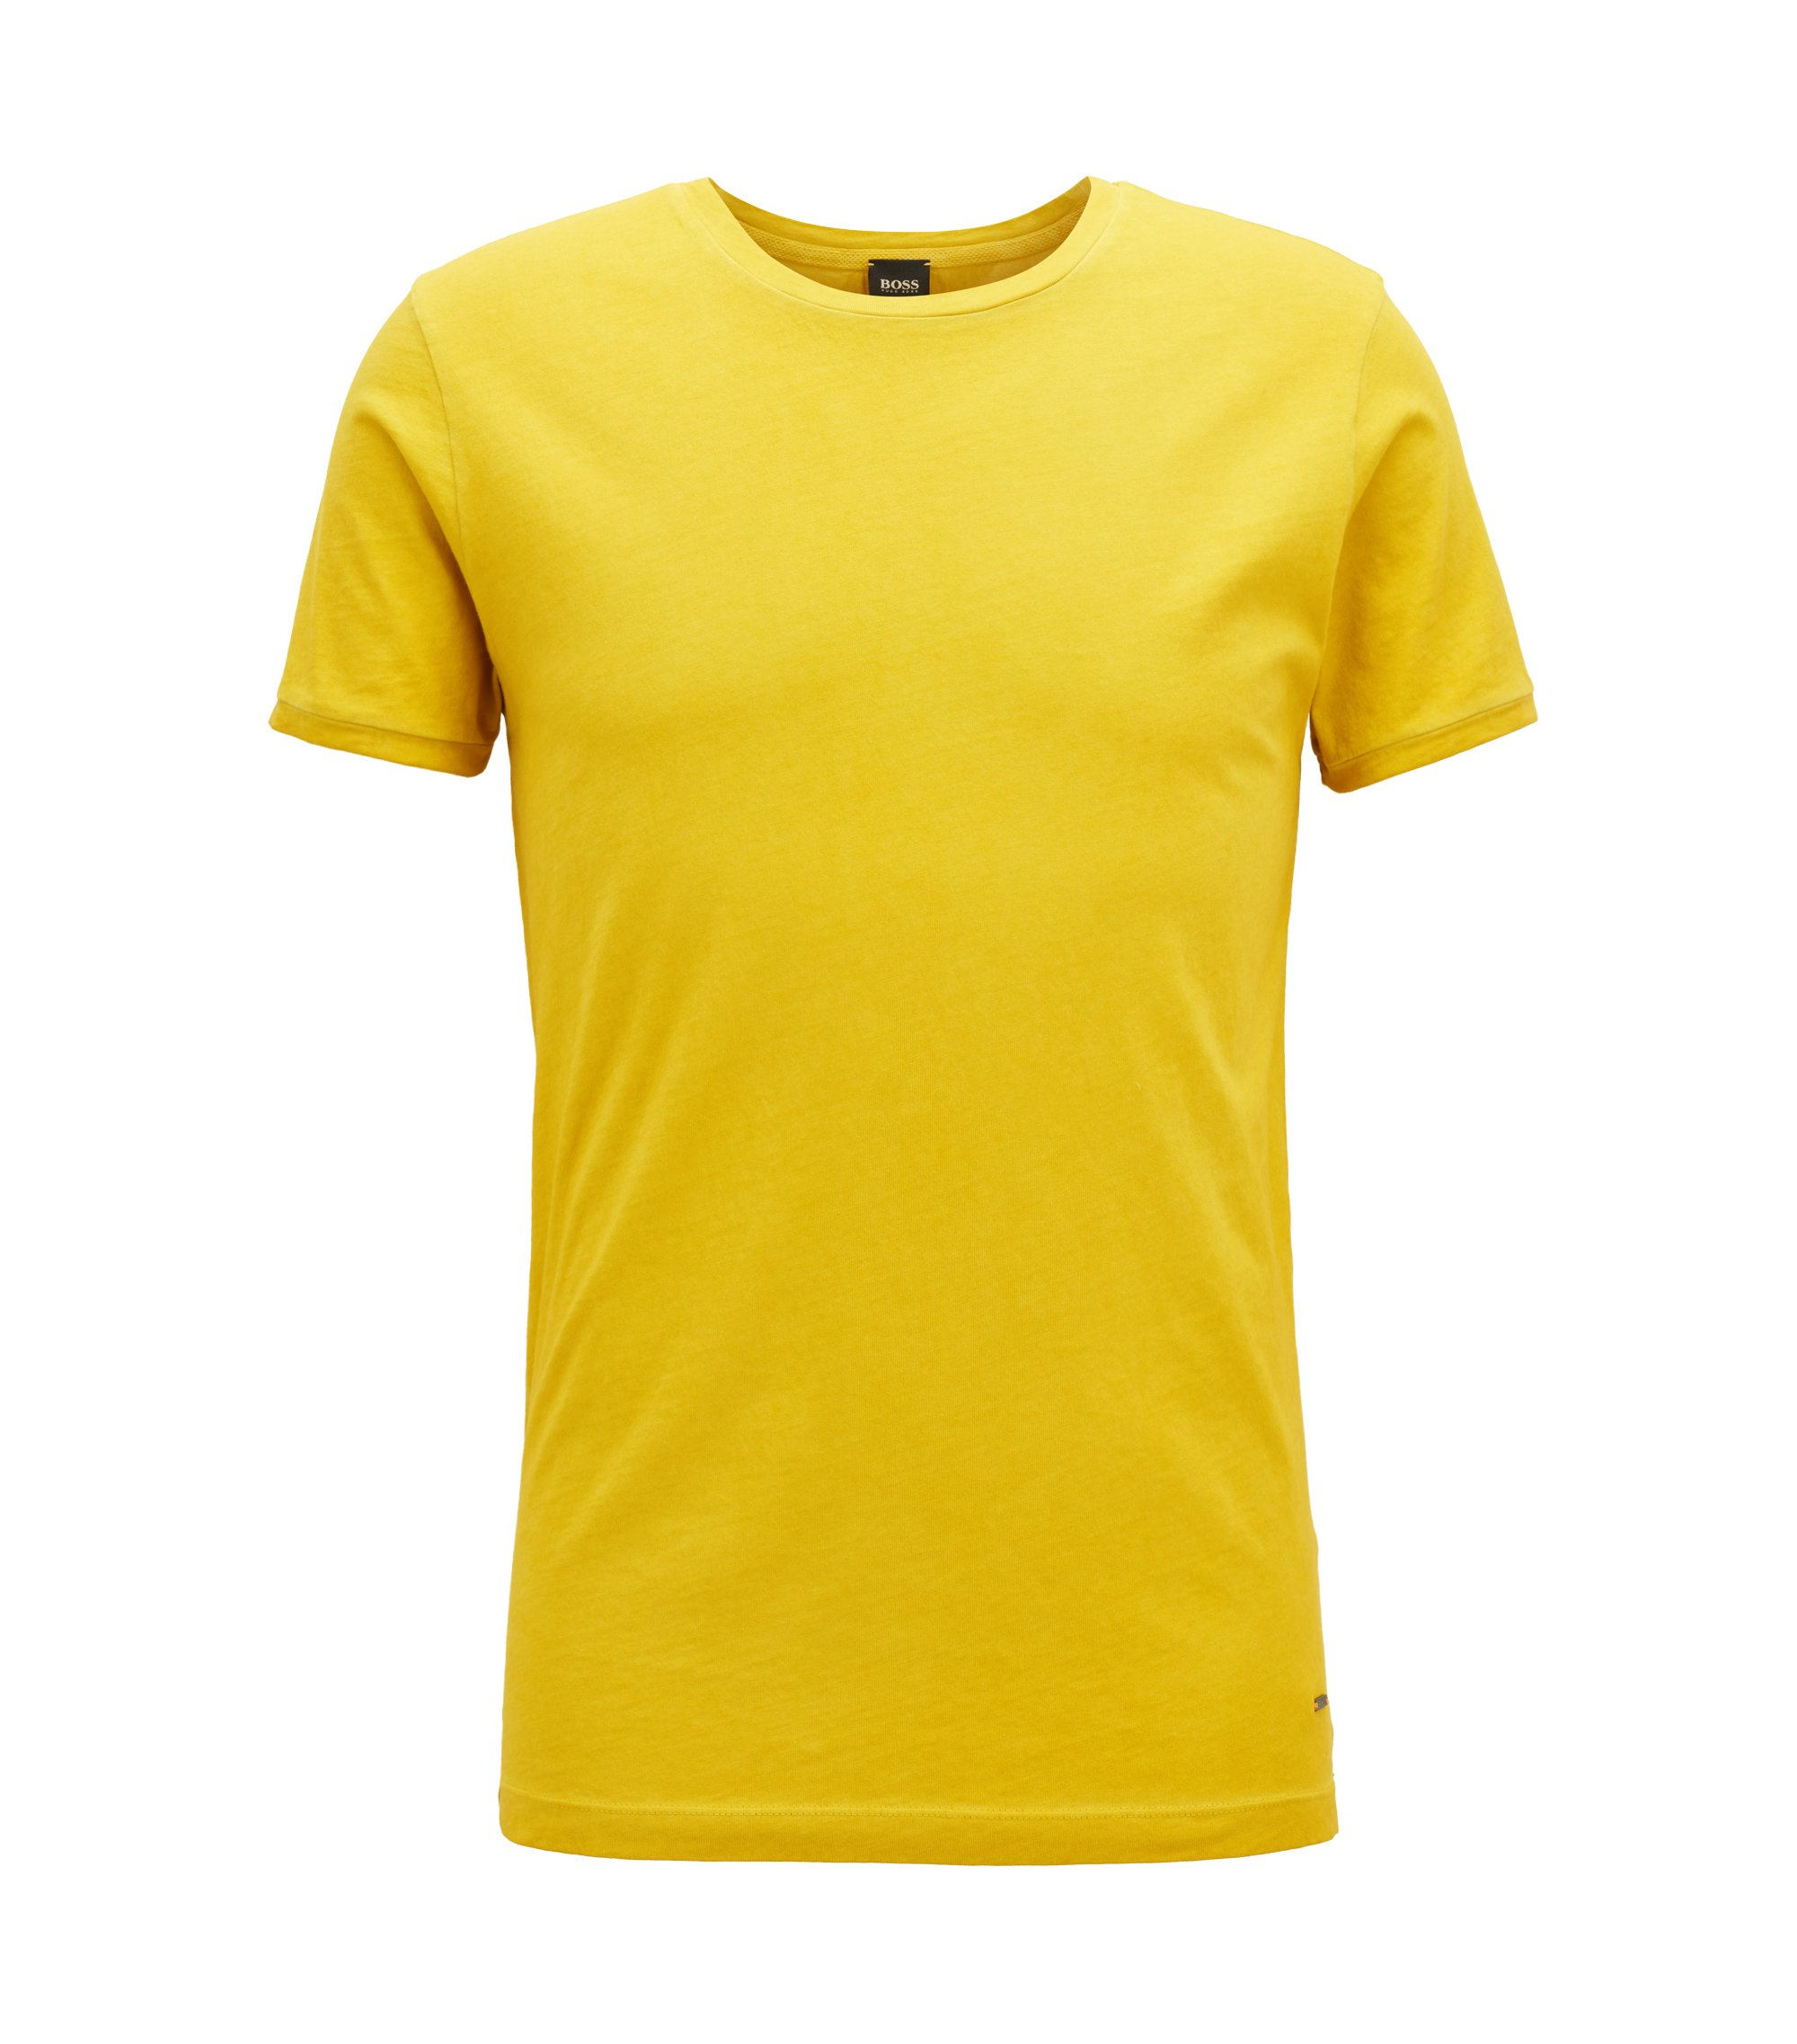 T-shirt Regular Fit en coton teint en pièce, Jaune